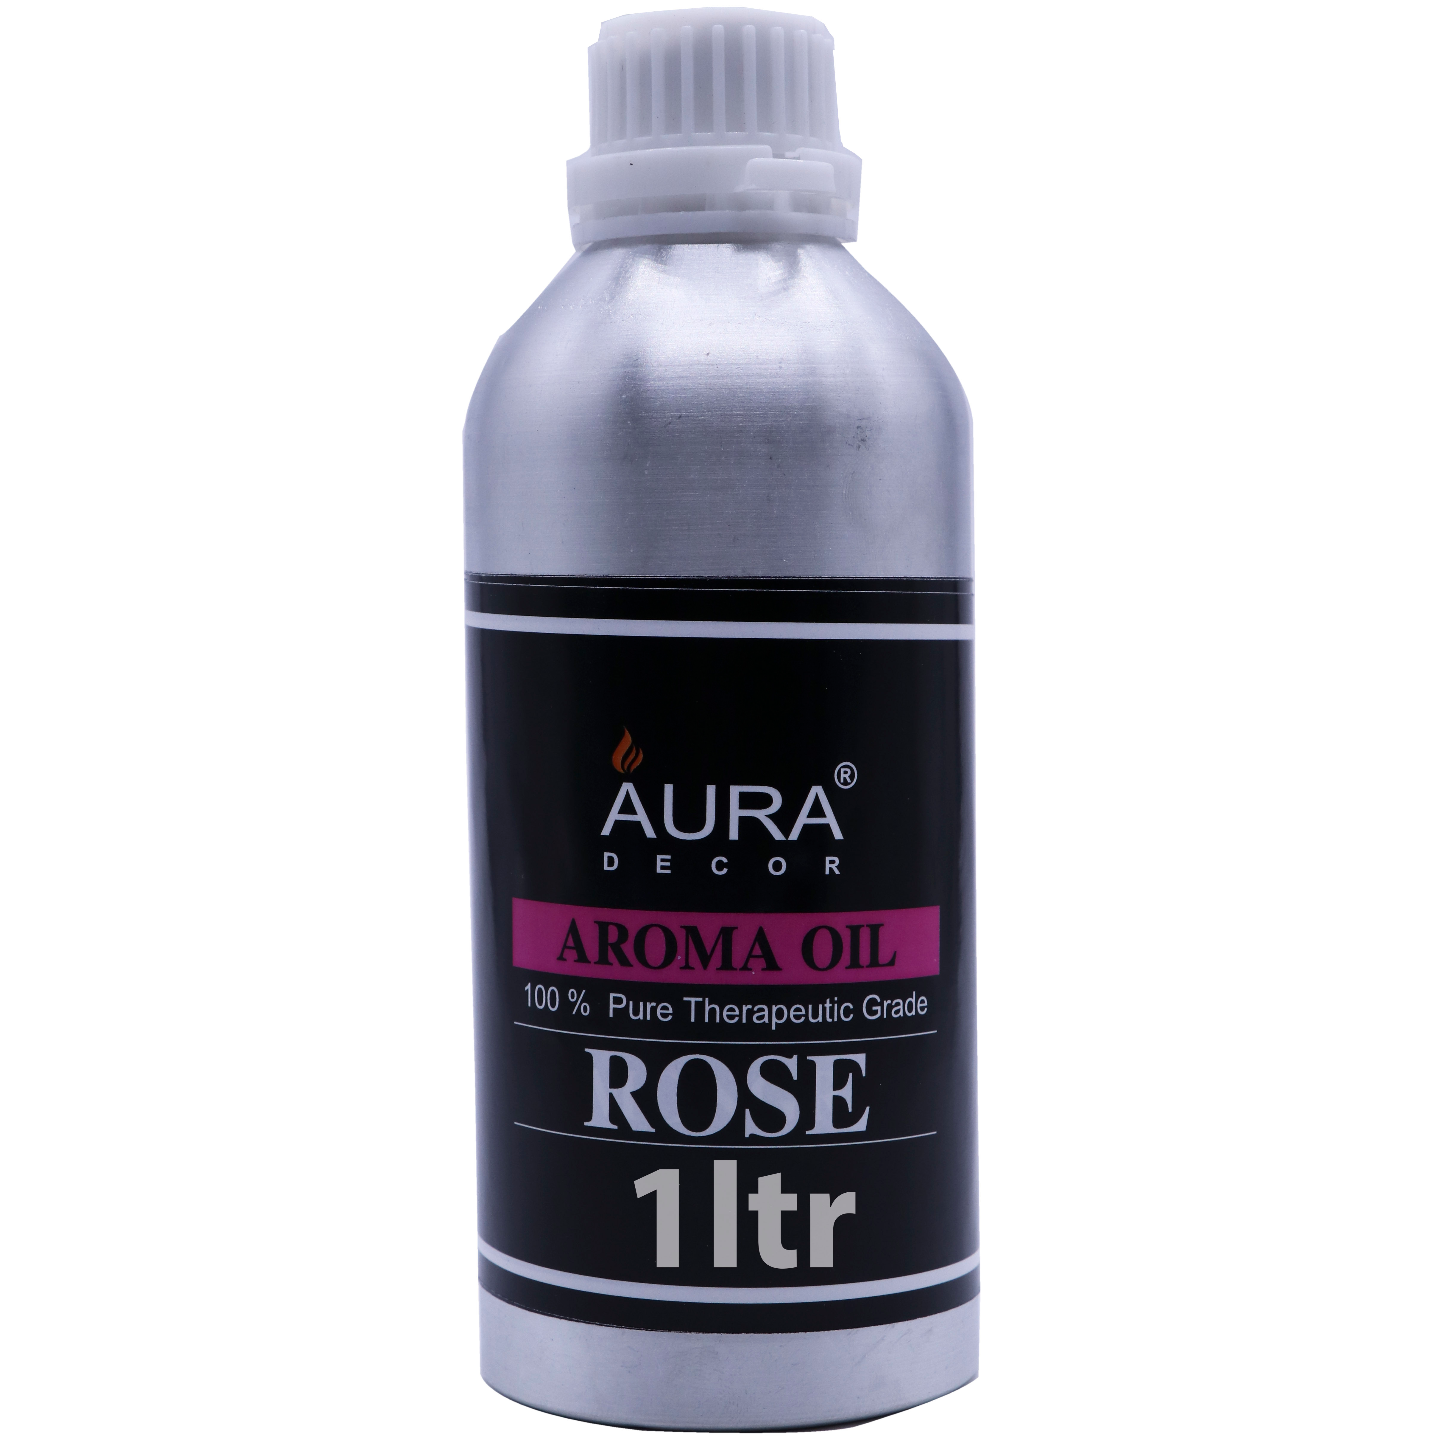 AuraDecor Undiluted Aromatherapy Oil ( Rose 1 Ltr )